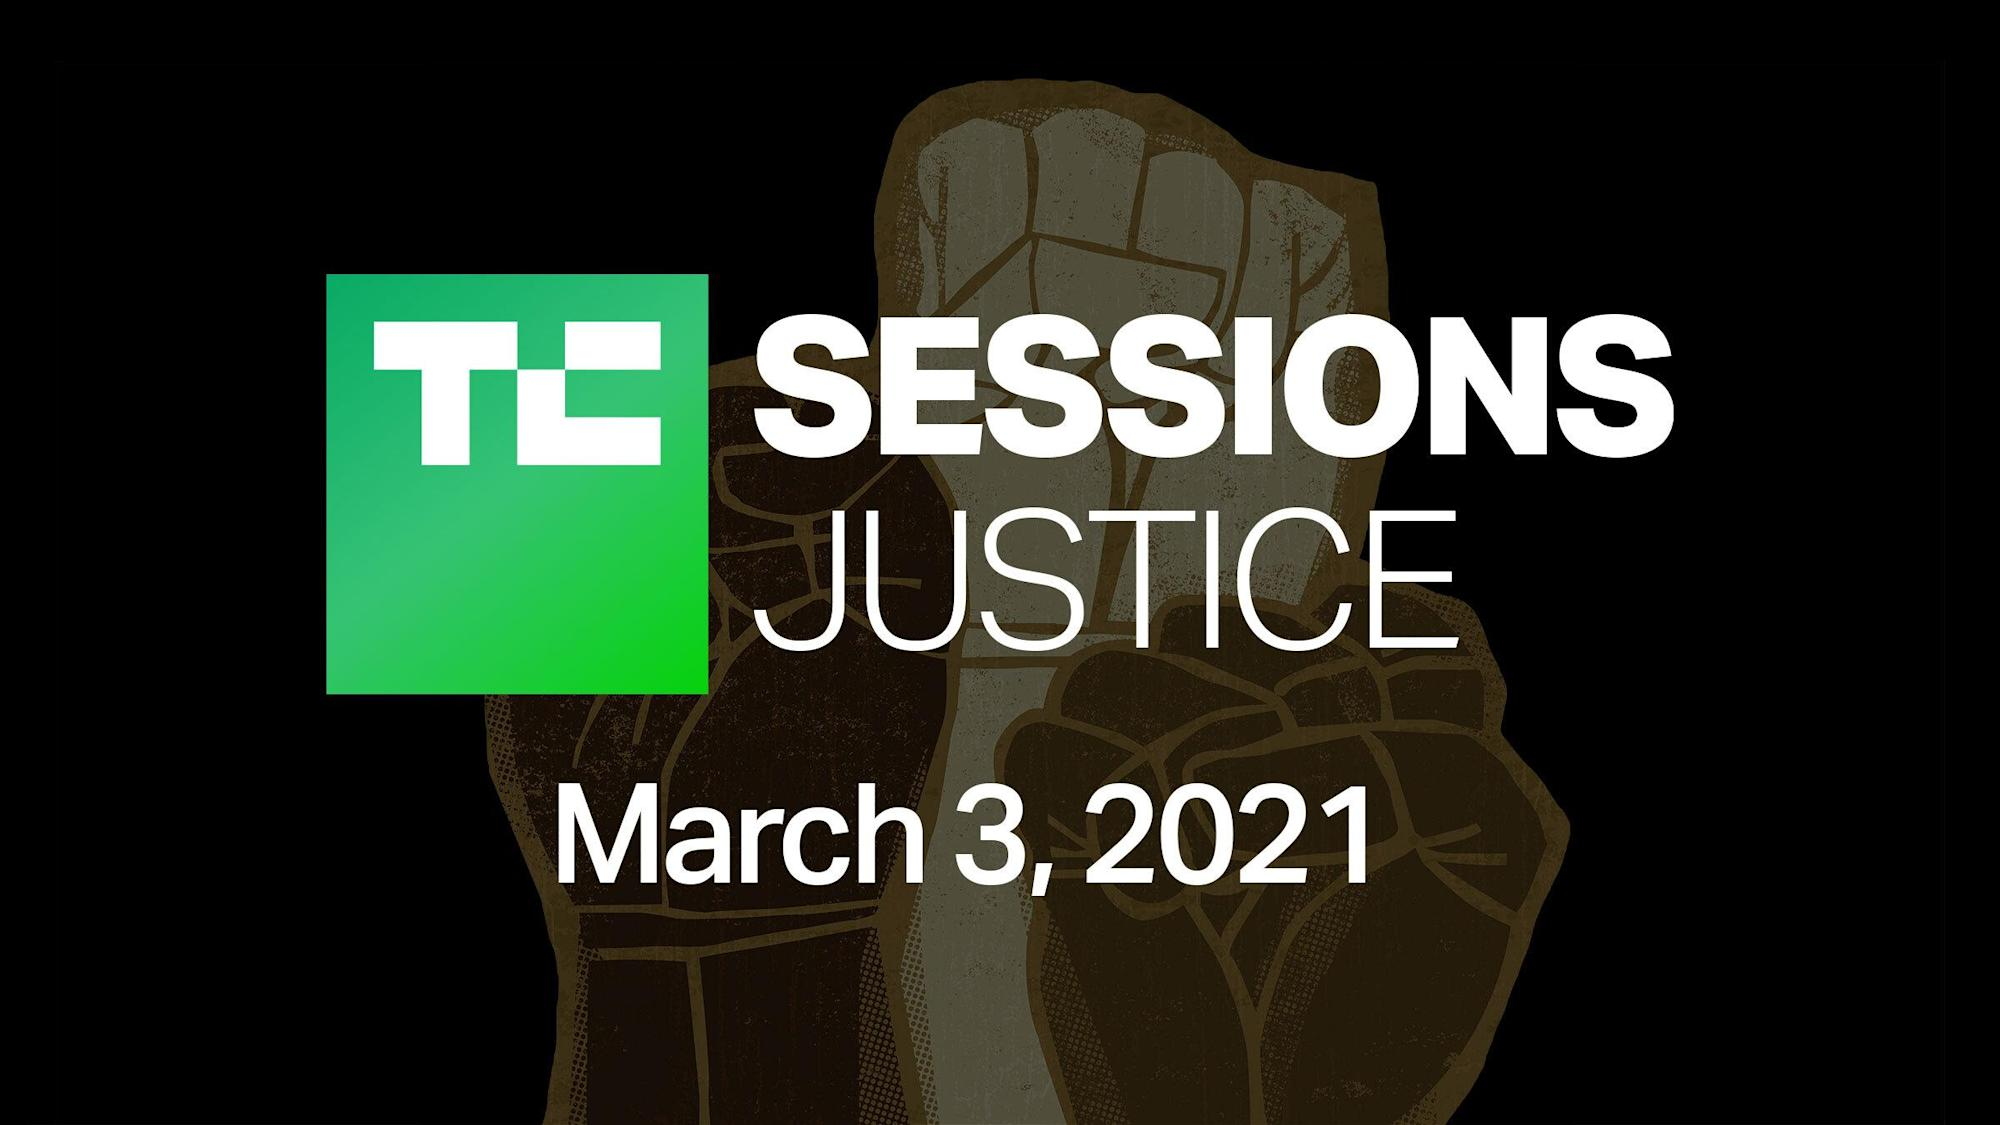 finance.yahoo.com: Announcing the complete agenda for TC Sessions: Justice